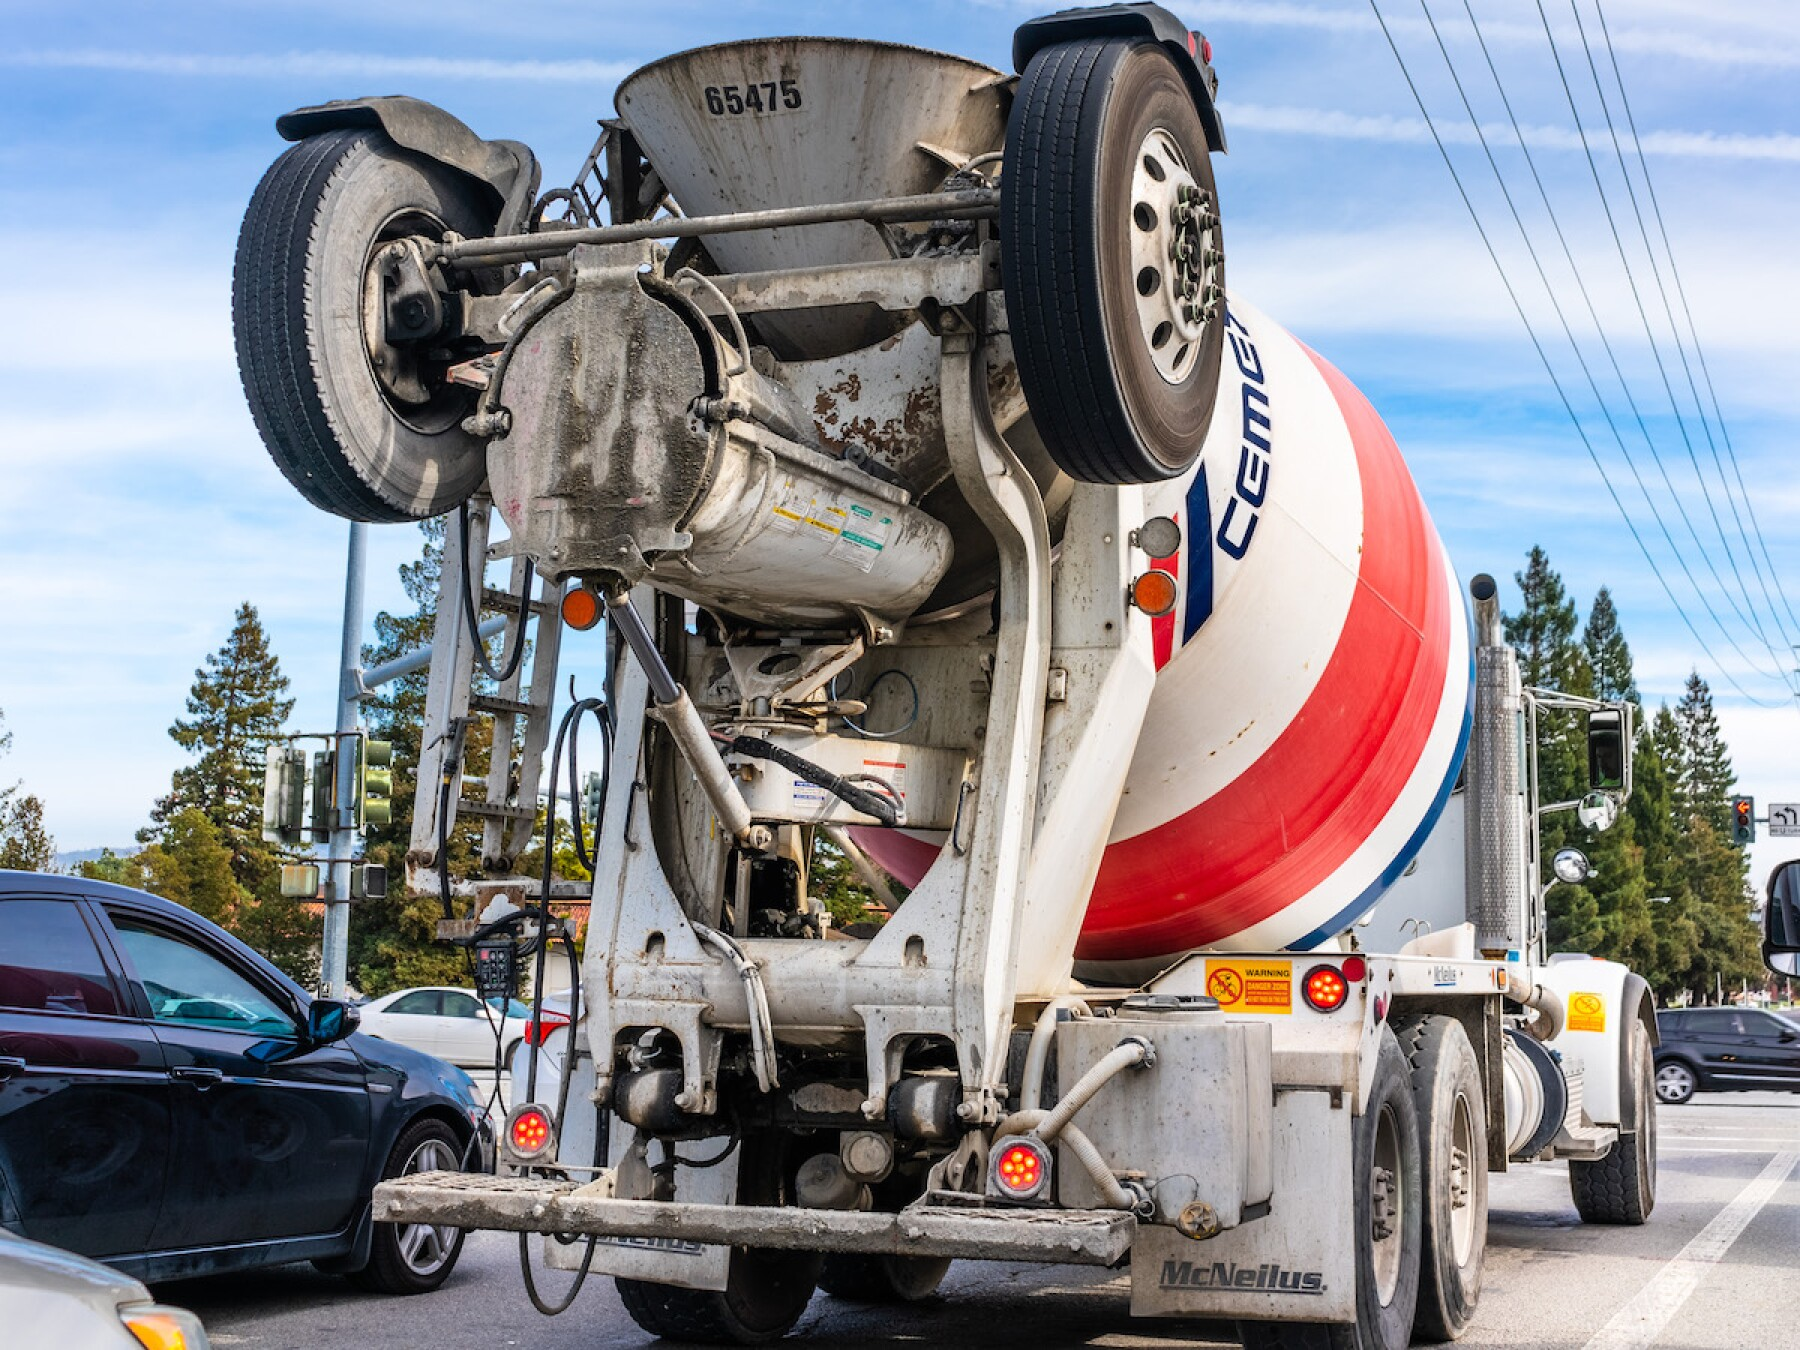 Cemex mixer truck transporting cement to the construction site